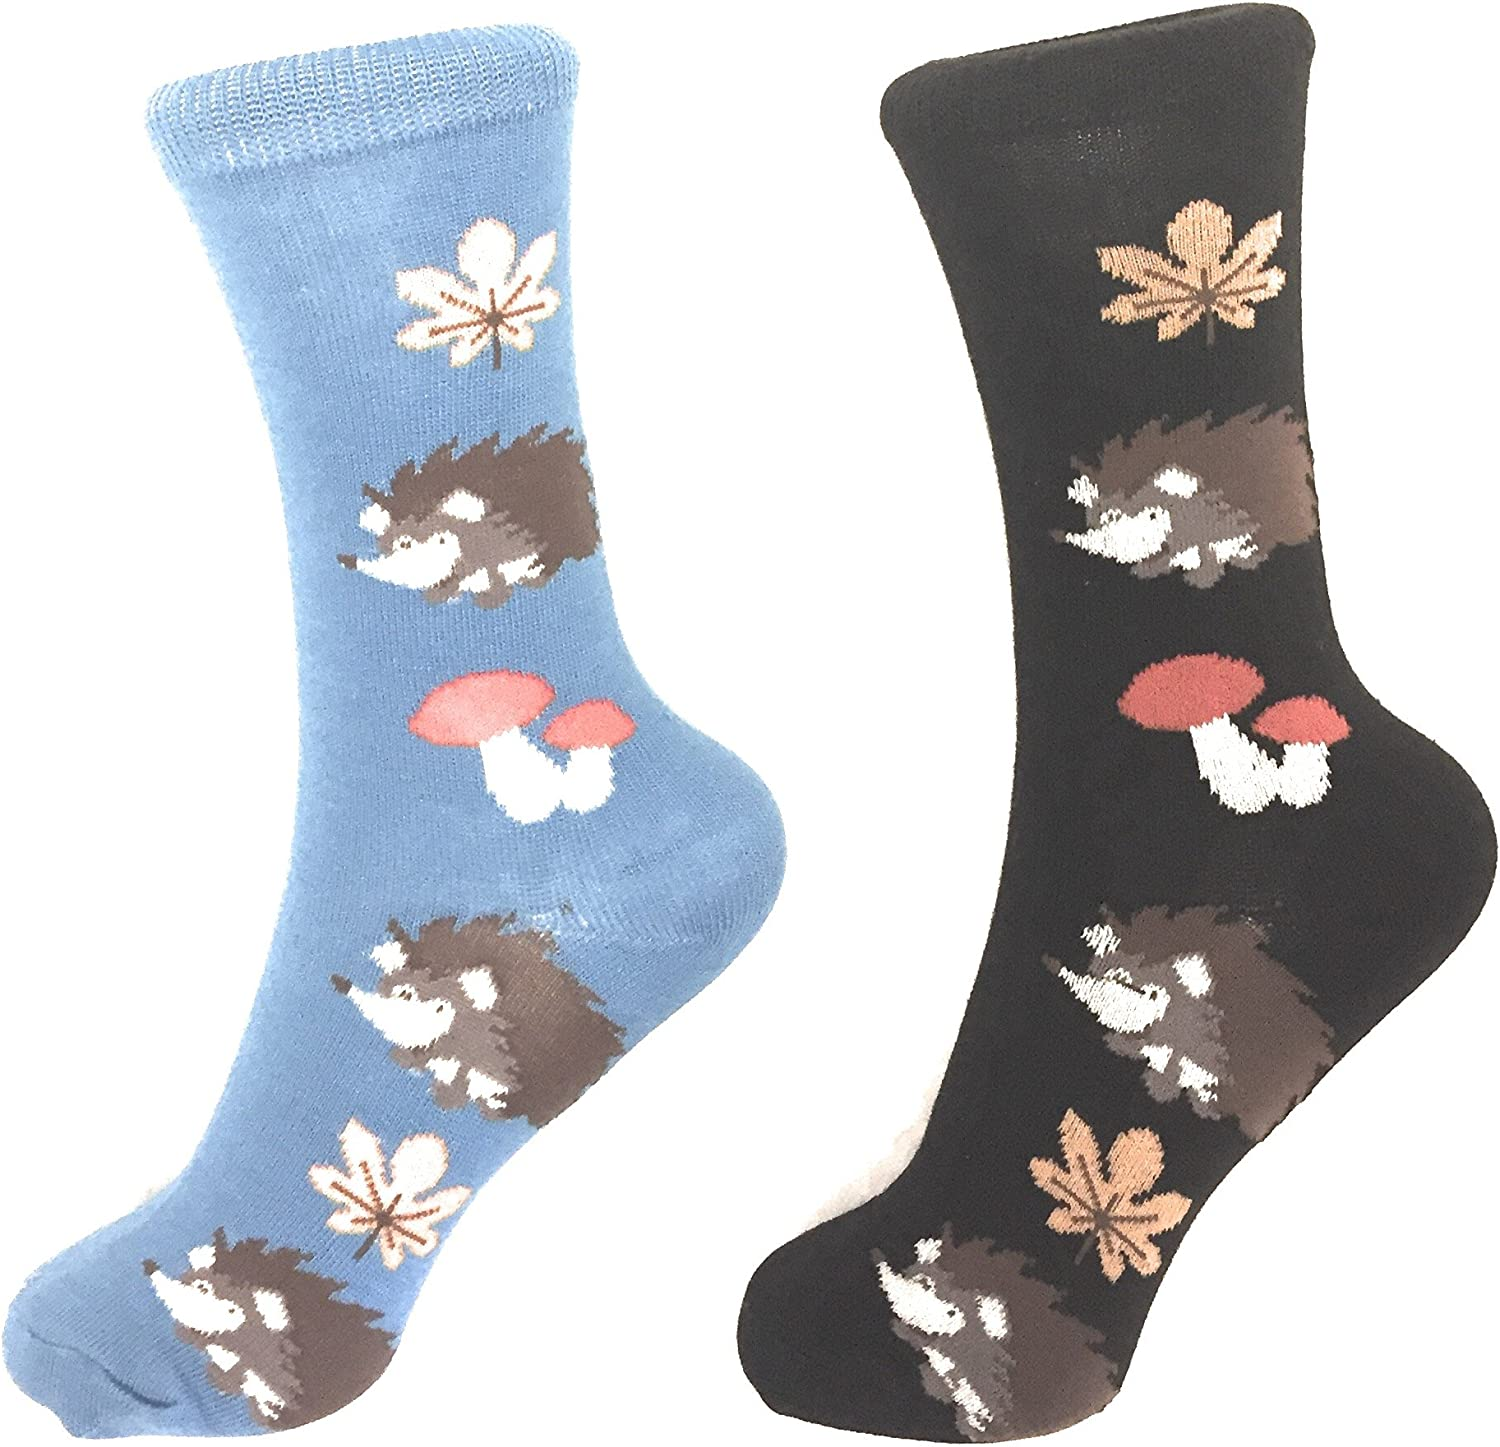 2 Pack Socks Hedge Hogs Pattern Novelty Crew Socks Fun Fashion Casual Comfy Cozy (2 Pack)